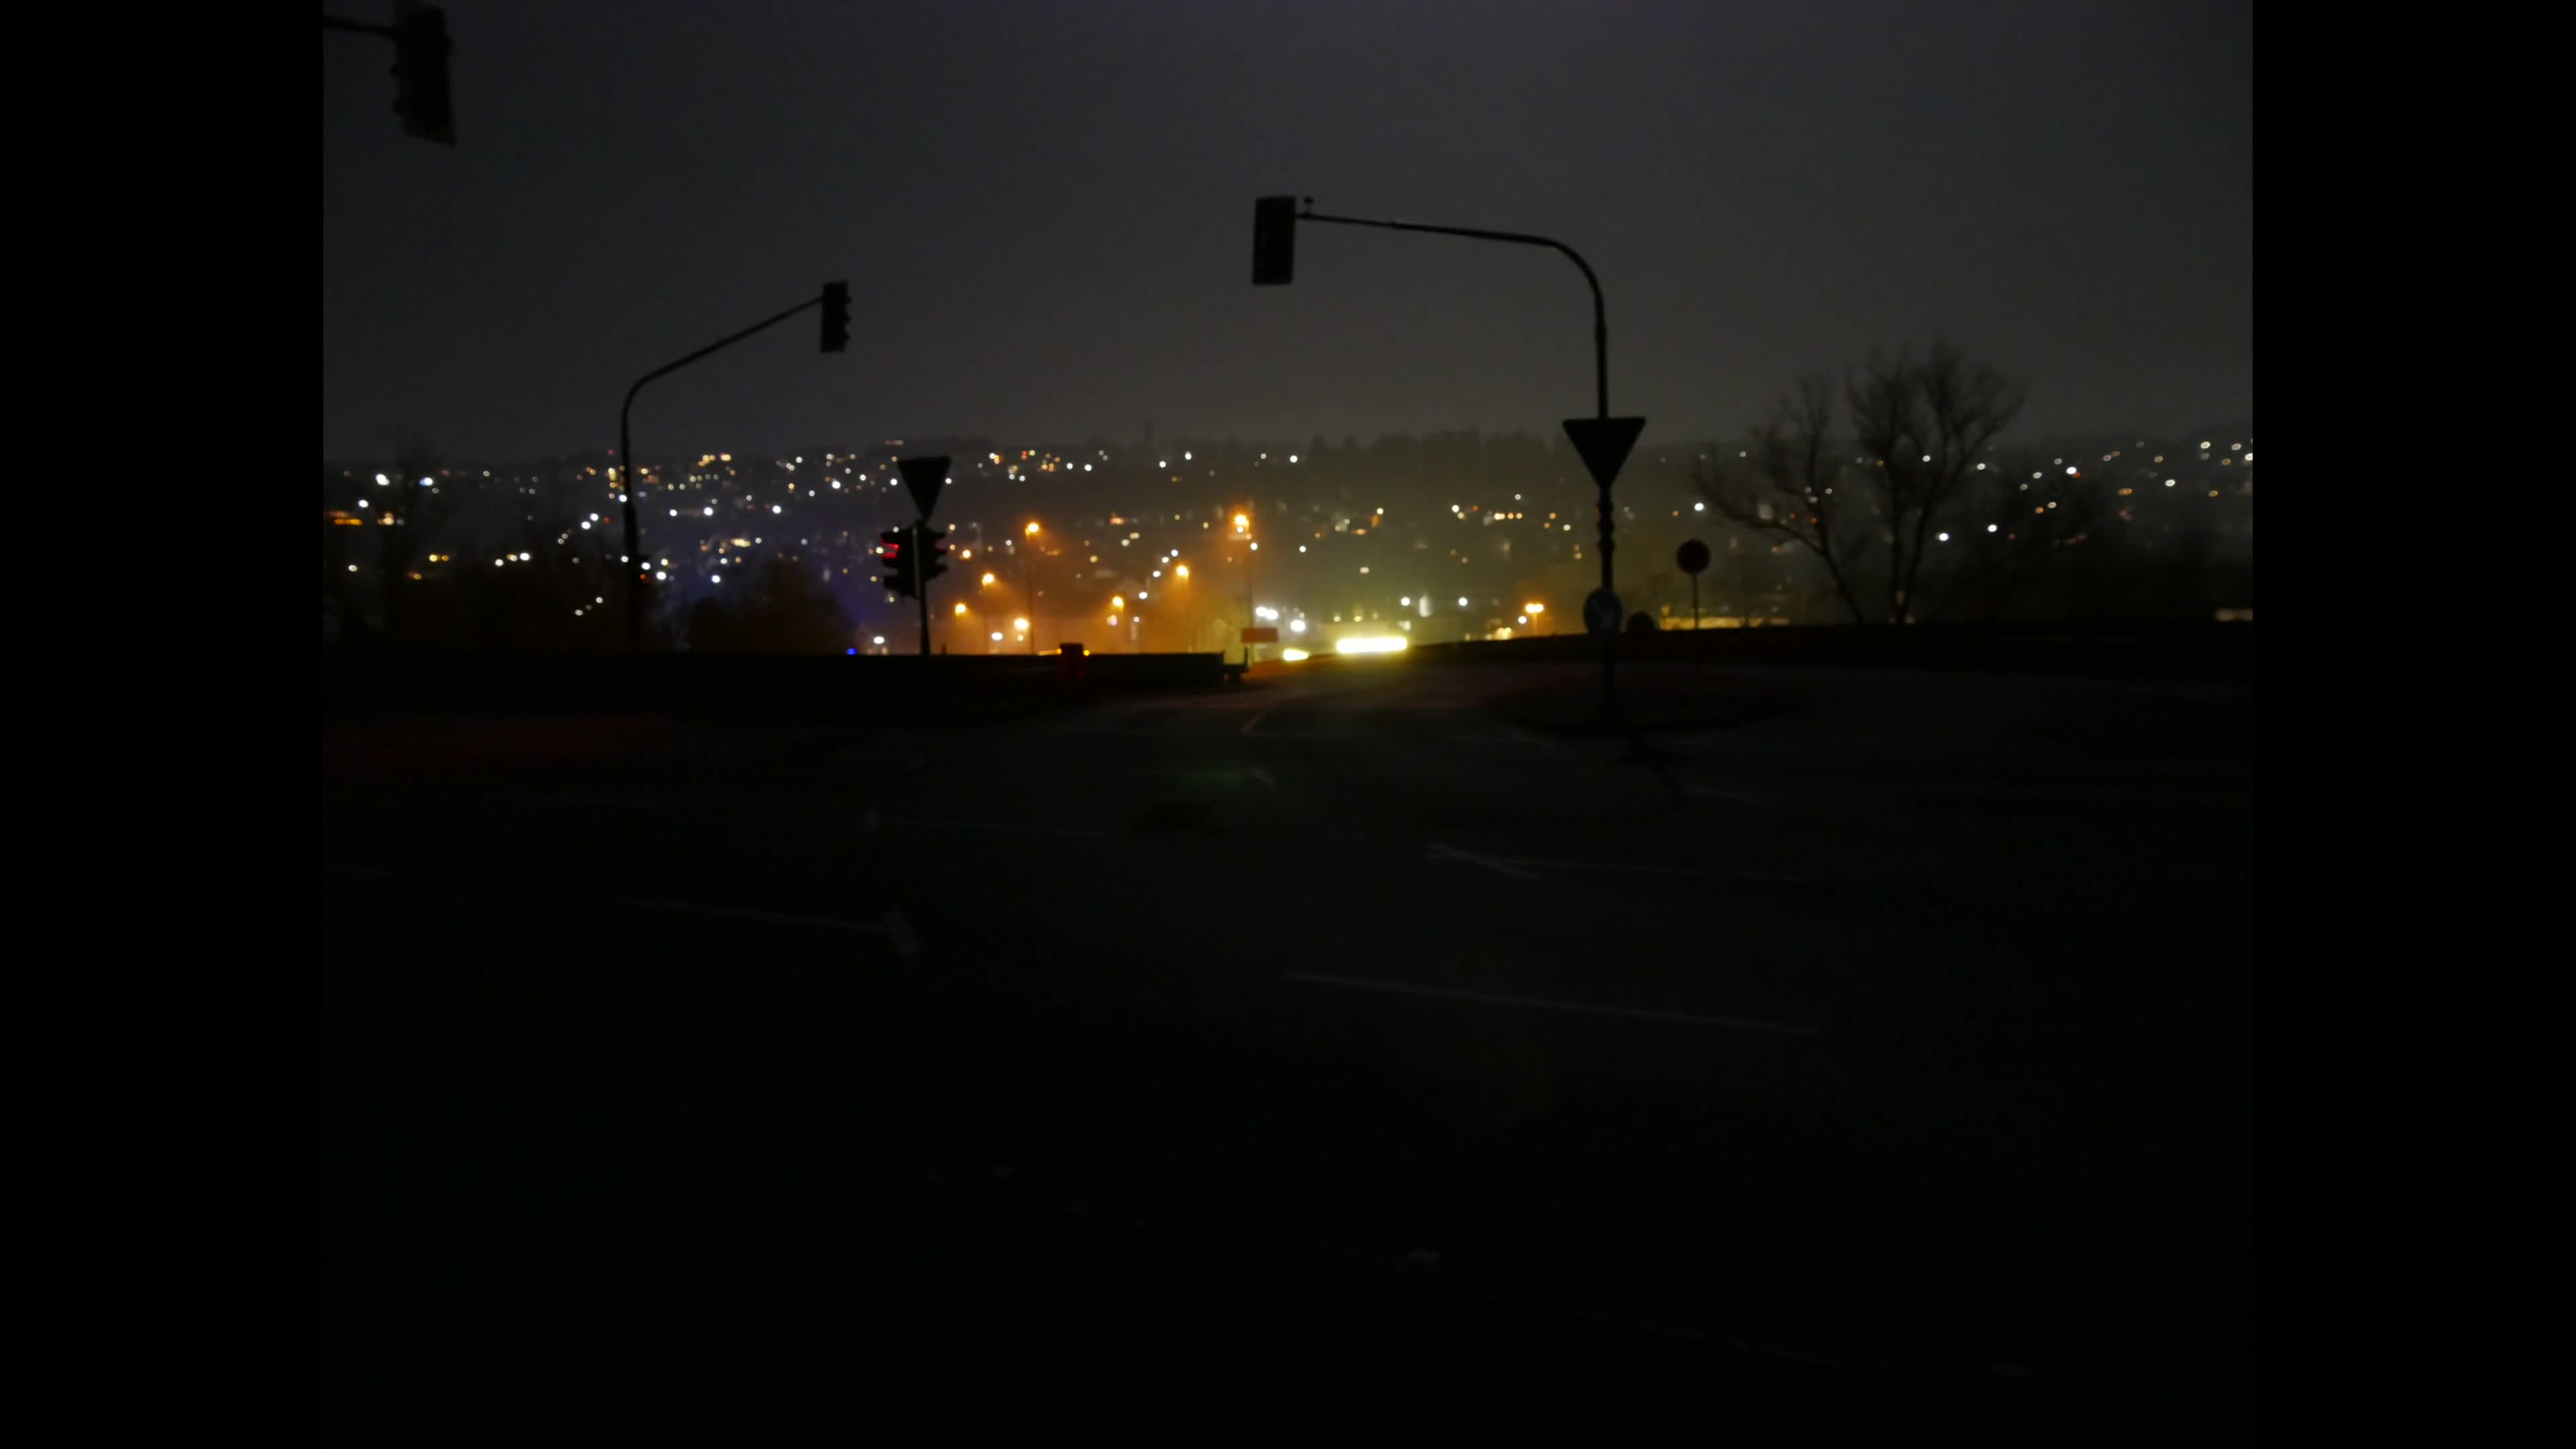 Video of road during night